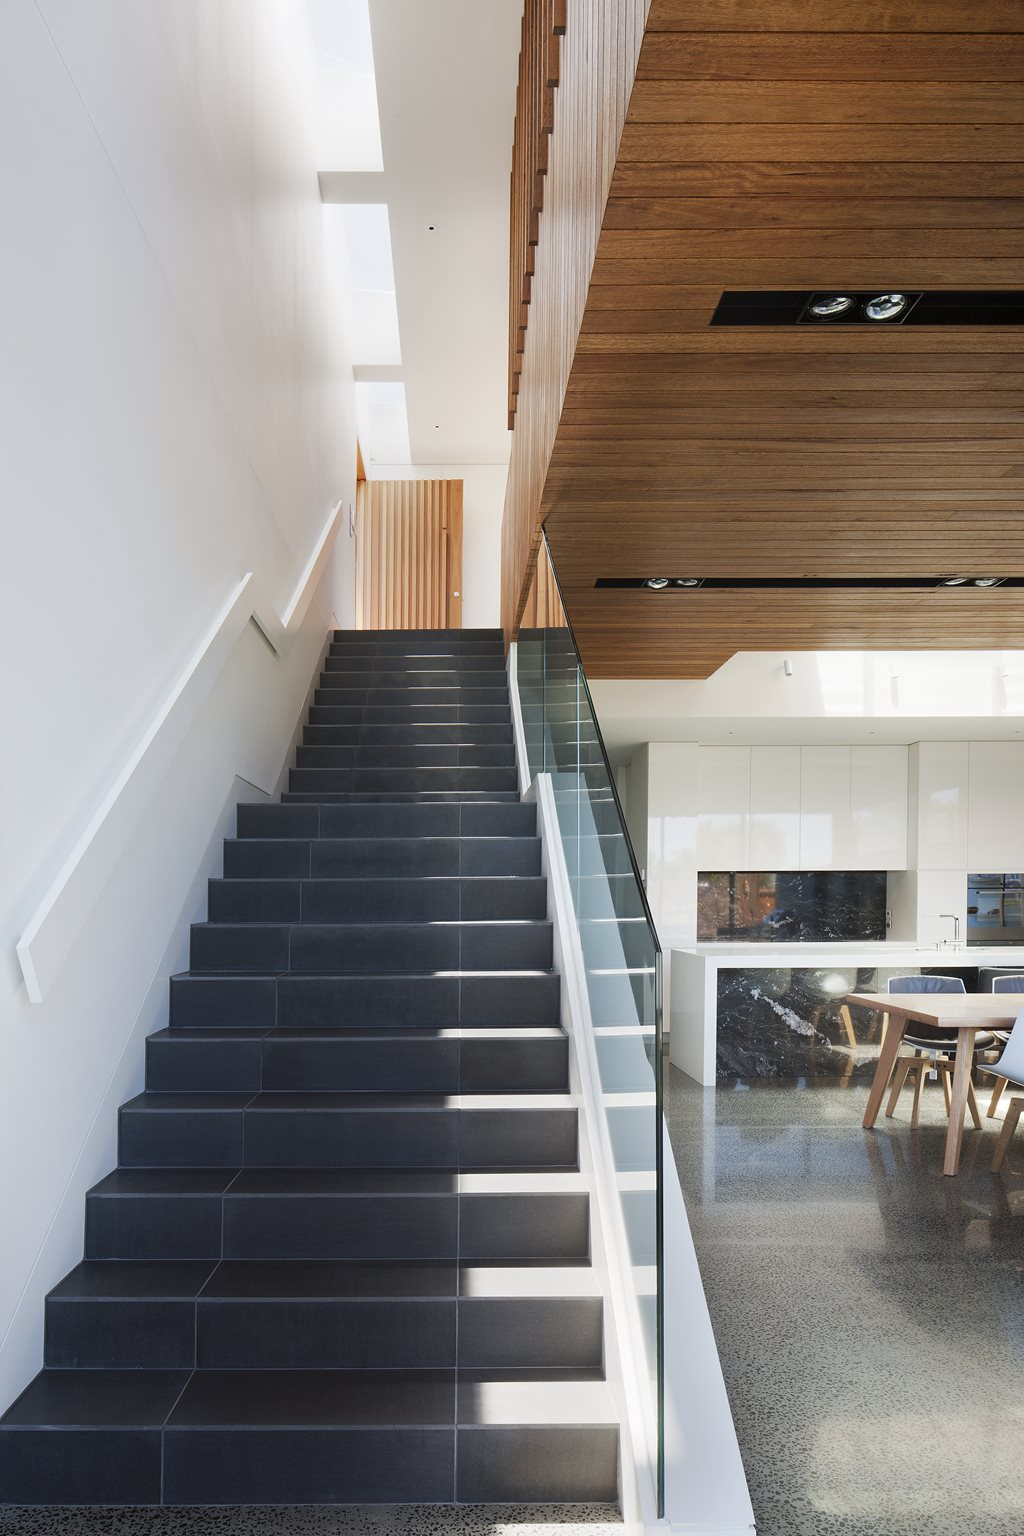 Northcote Residence By K2ld Architecture And Design